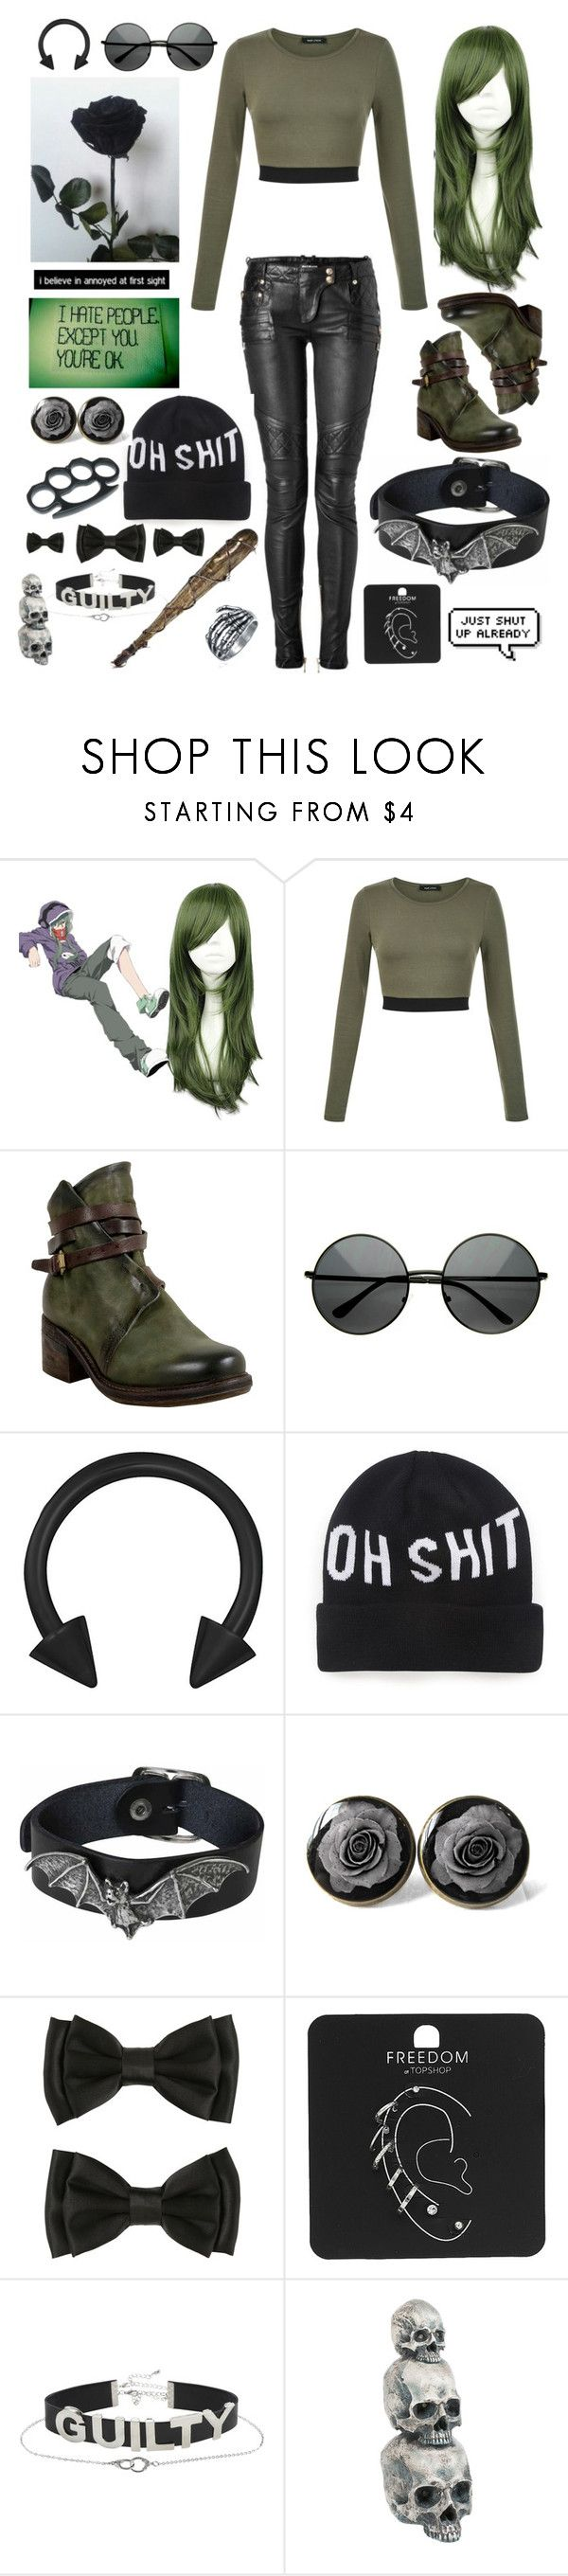 """Just Shut Up Already"" by headphones-girl ❤ liked on Polyvore featuring A.S. 98, GET LOST, Balmain, Dimepiece, Barbed, Hot Topic, Topshop, Ganz and Bling Jewelry"